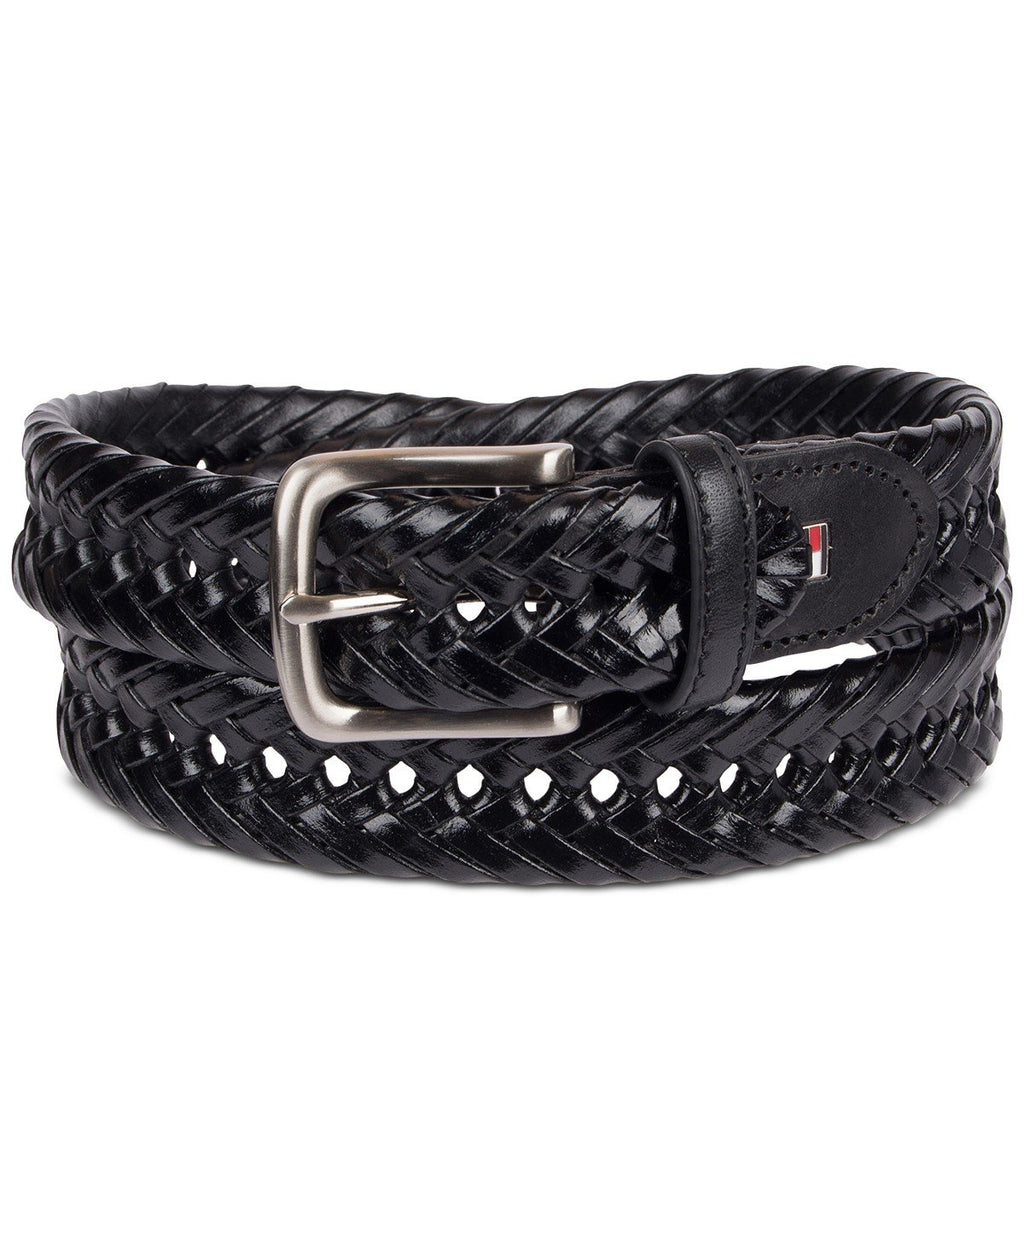 TOMMY HILFIGER BREADED LEATHER BLET